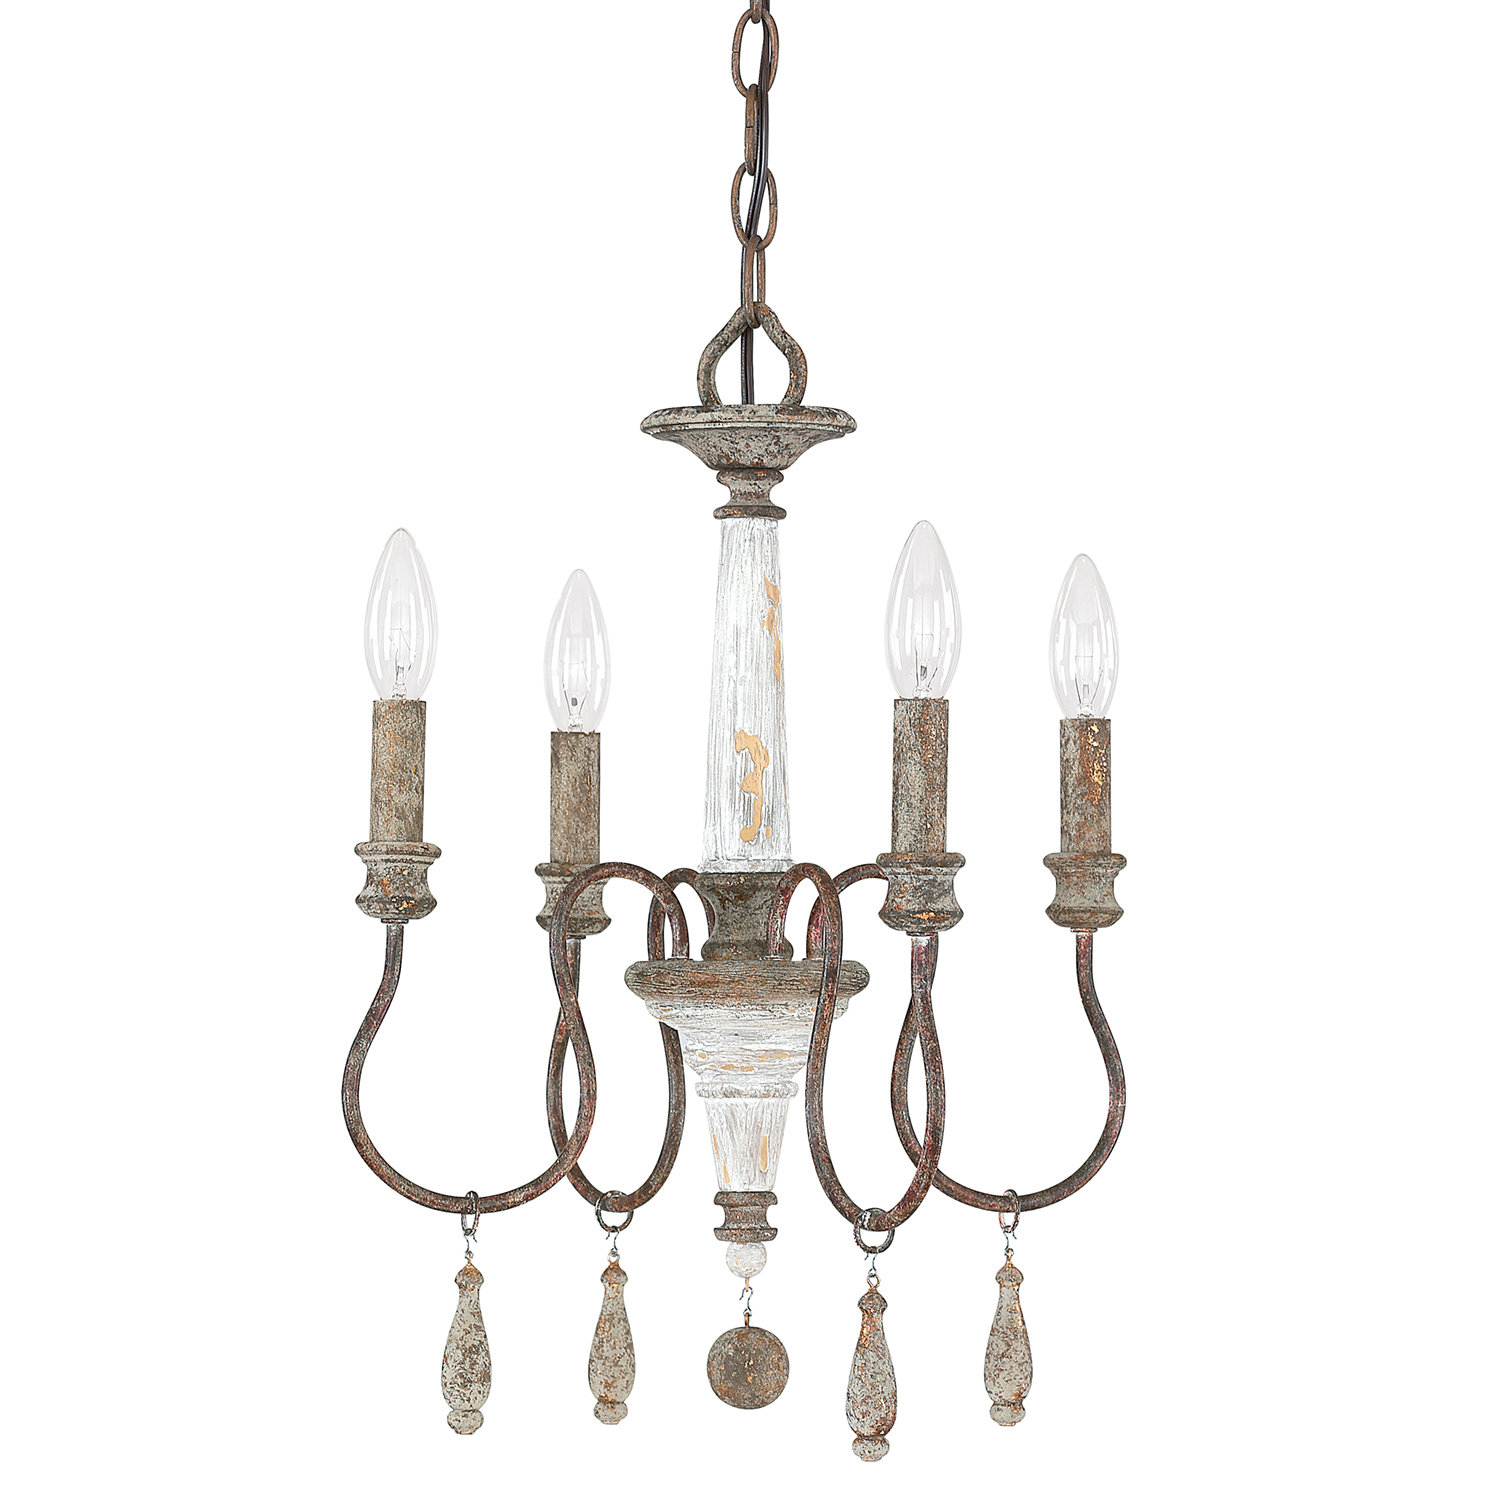 Armande Candle Style Chandelier with Armande 4-Light Lantern Drum Pendants (Image 7 of 30)